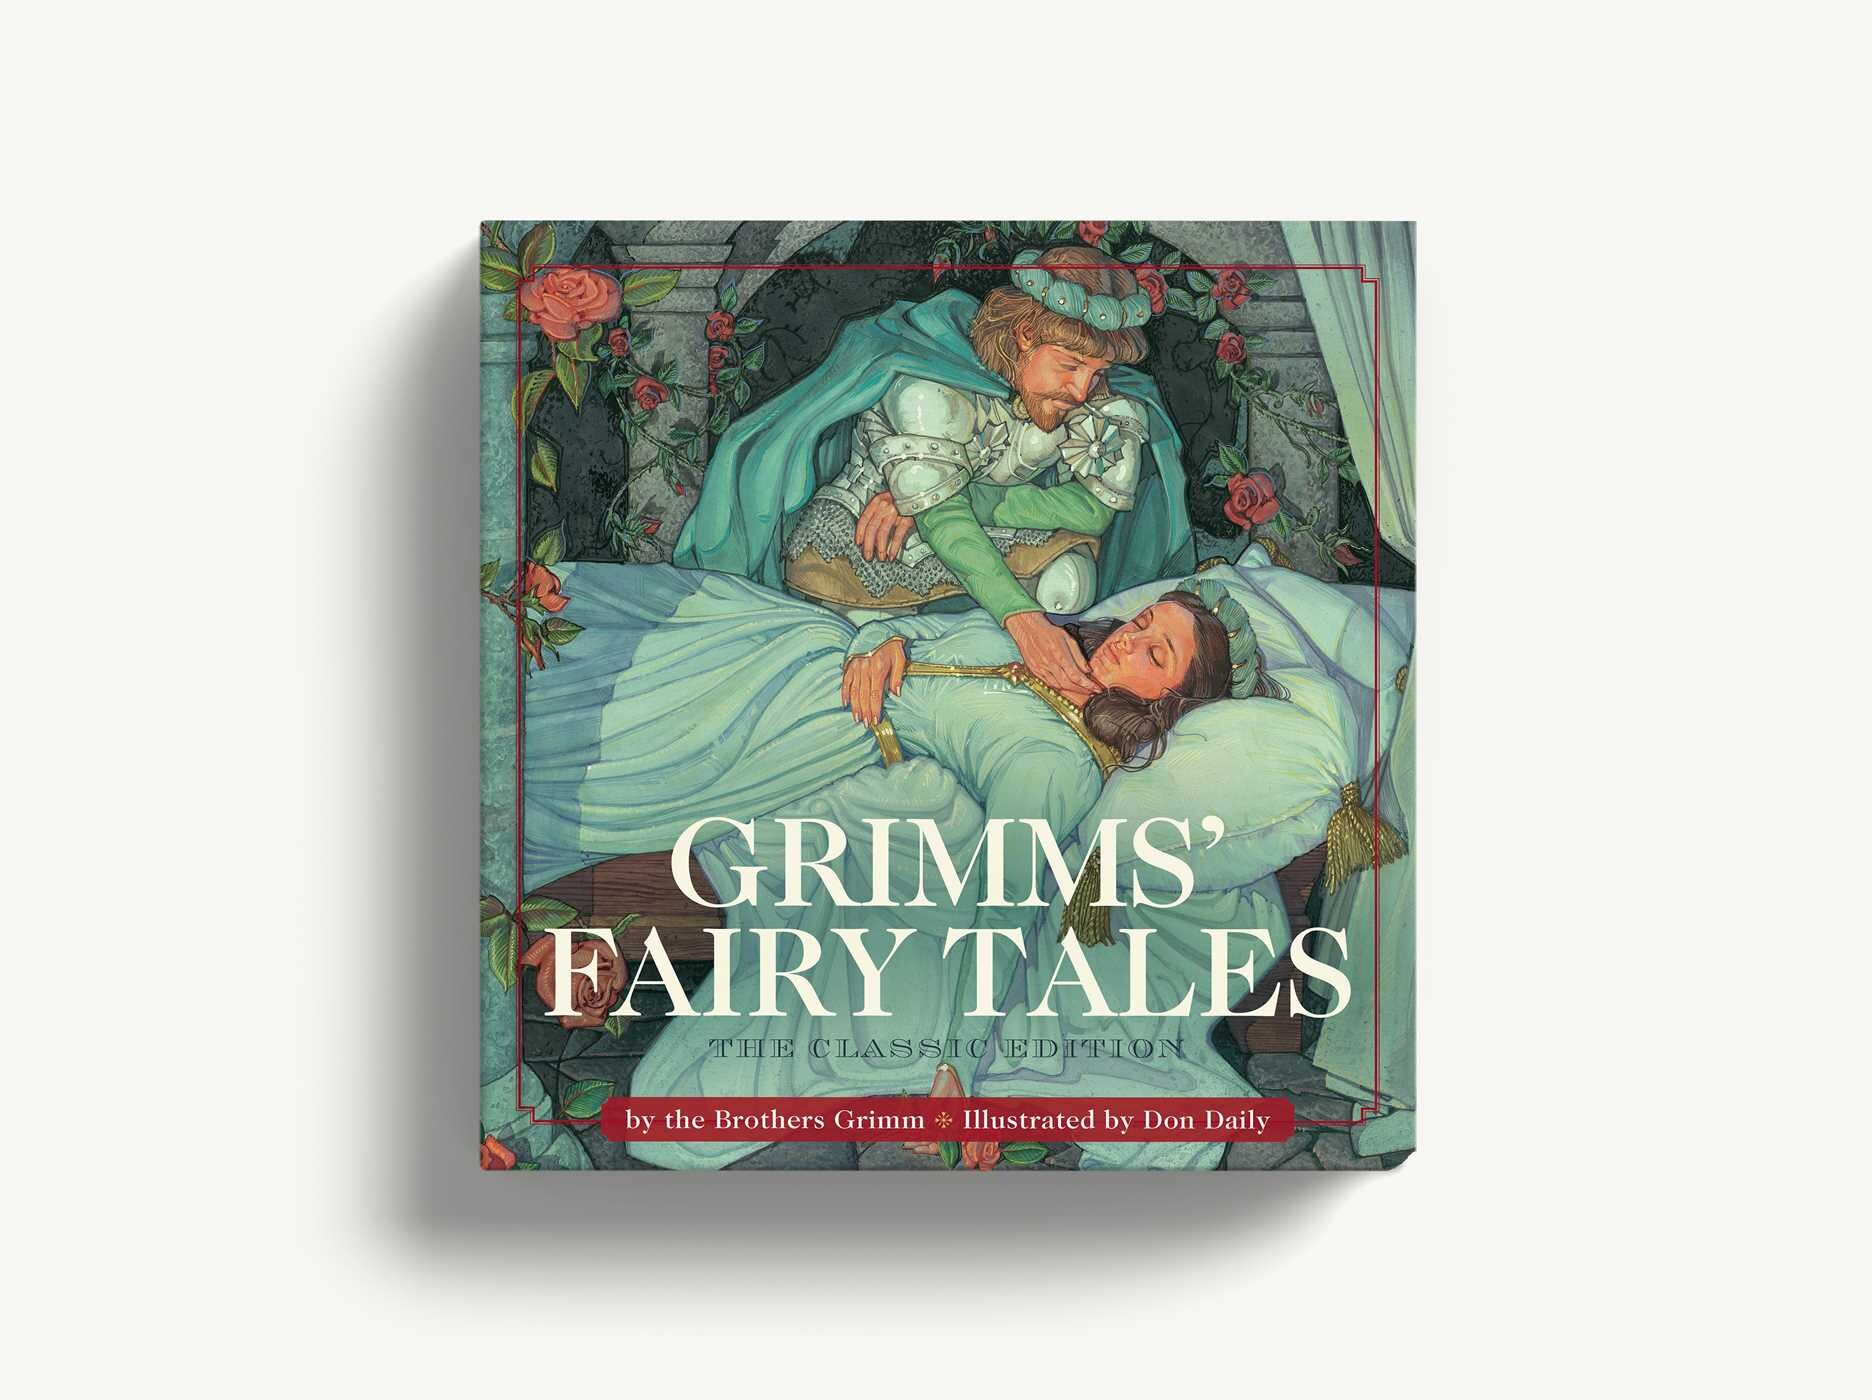 Grimms fairy tales 9781604334982.in01